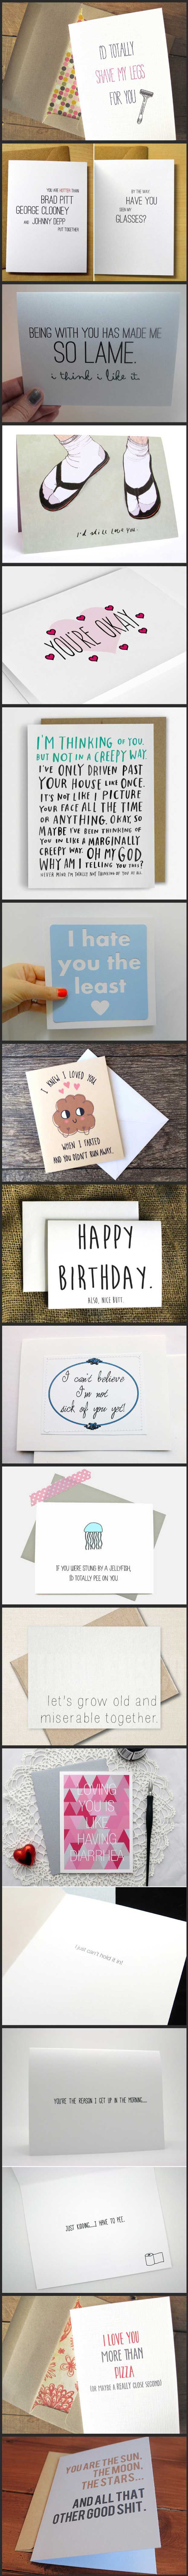 Perfectly romantic greeting cards